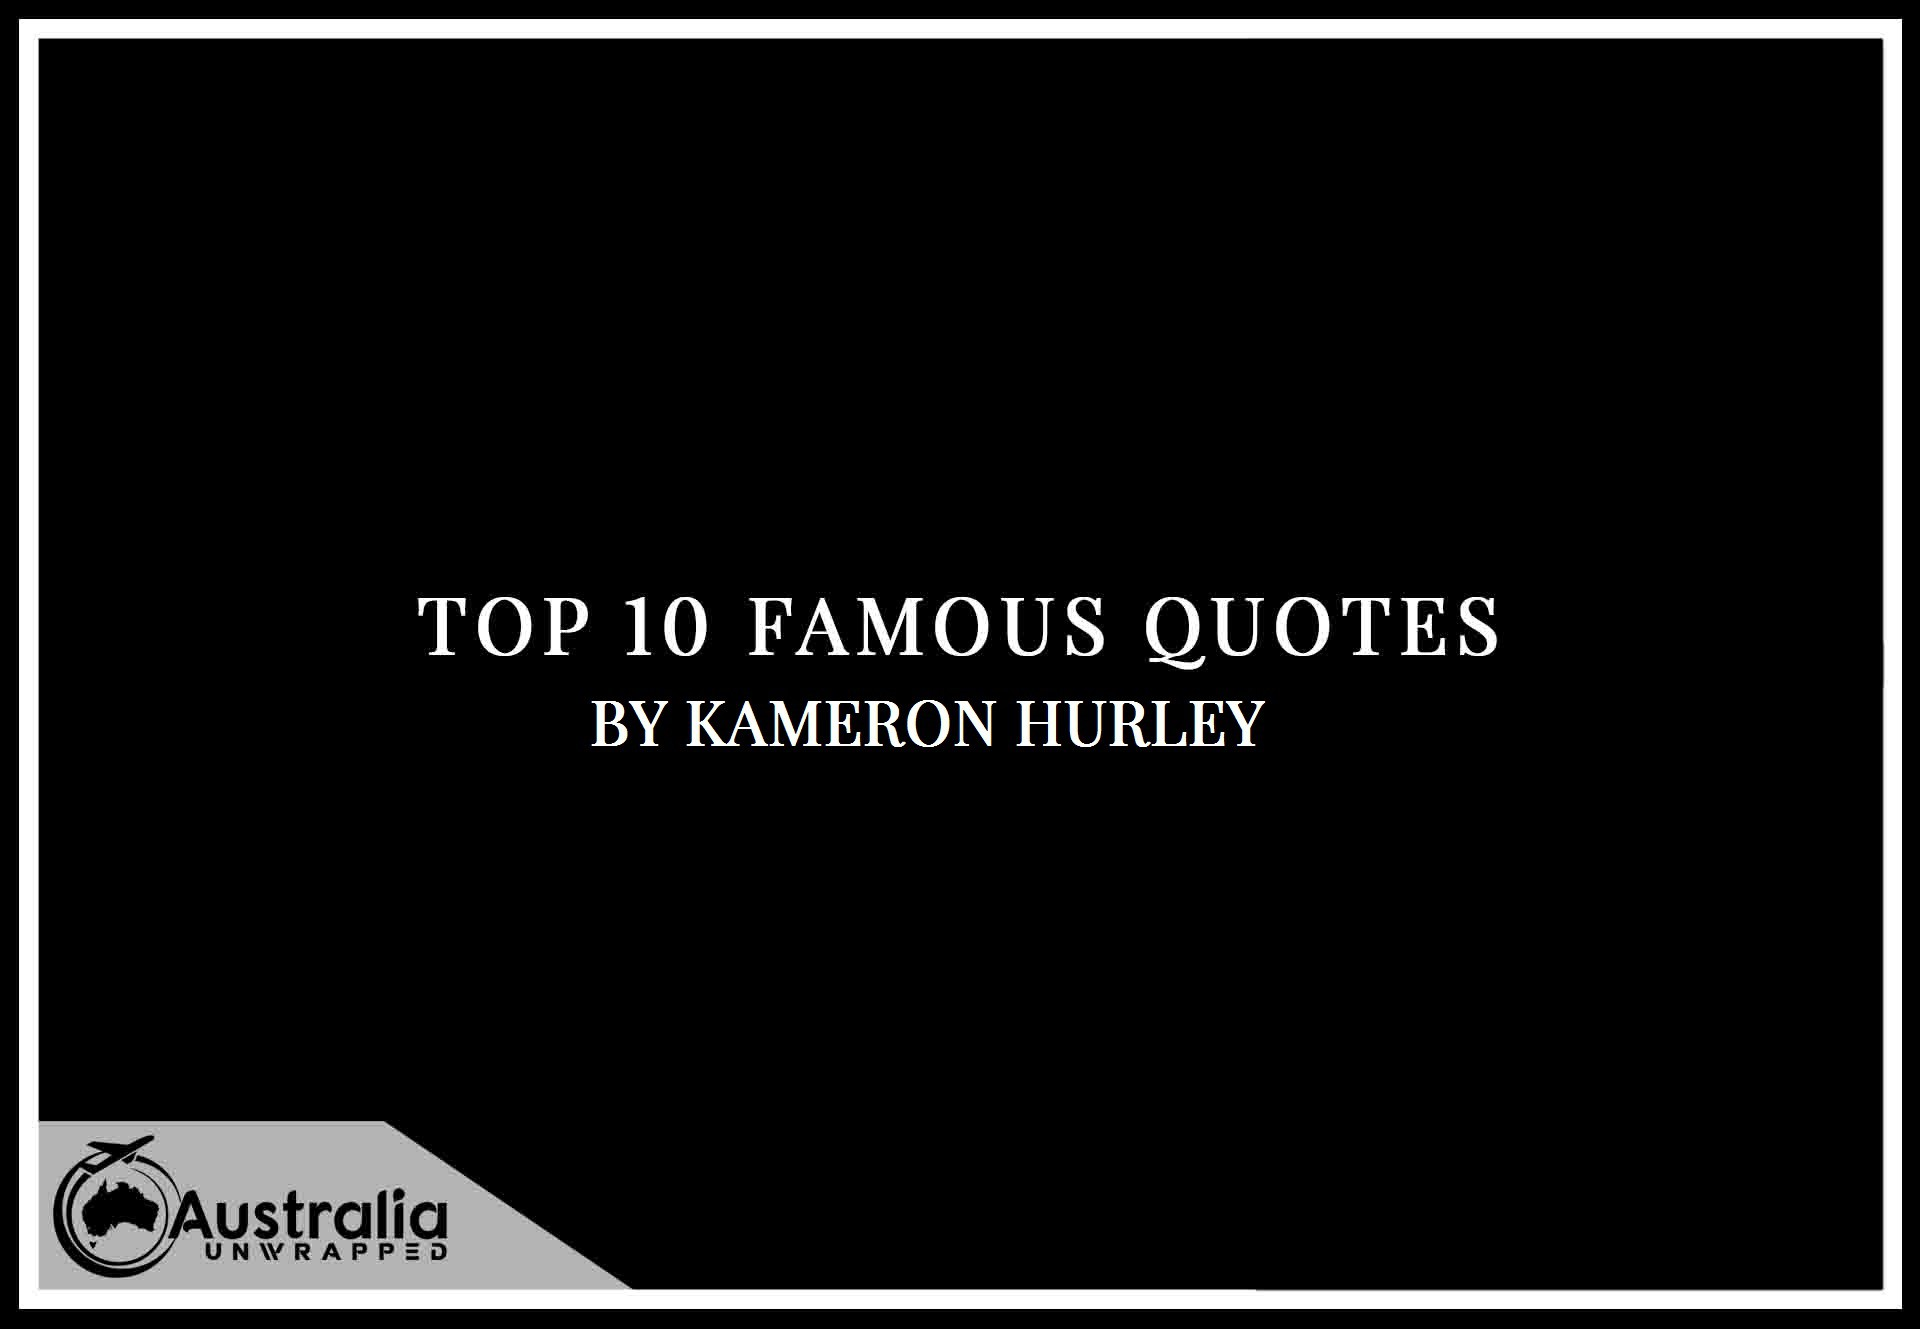 Kameron Hurley's Top 10 Popular and Famous Quotes